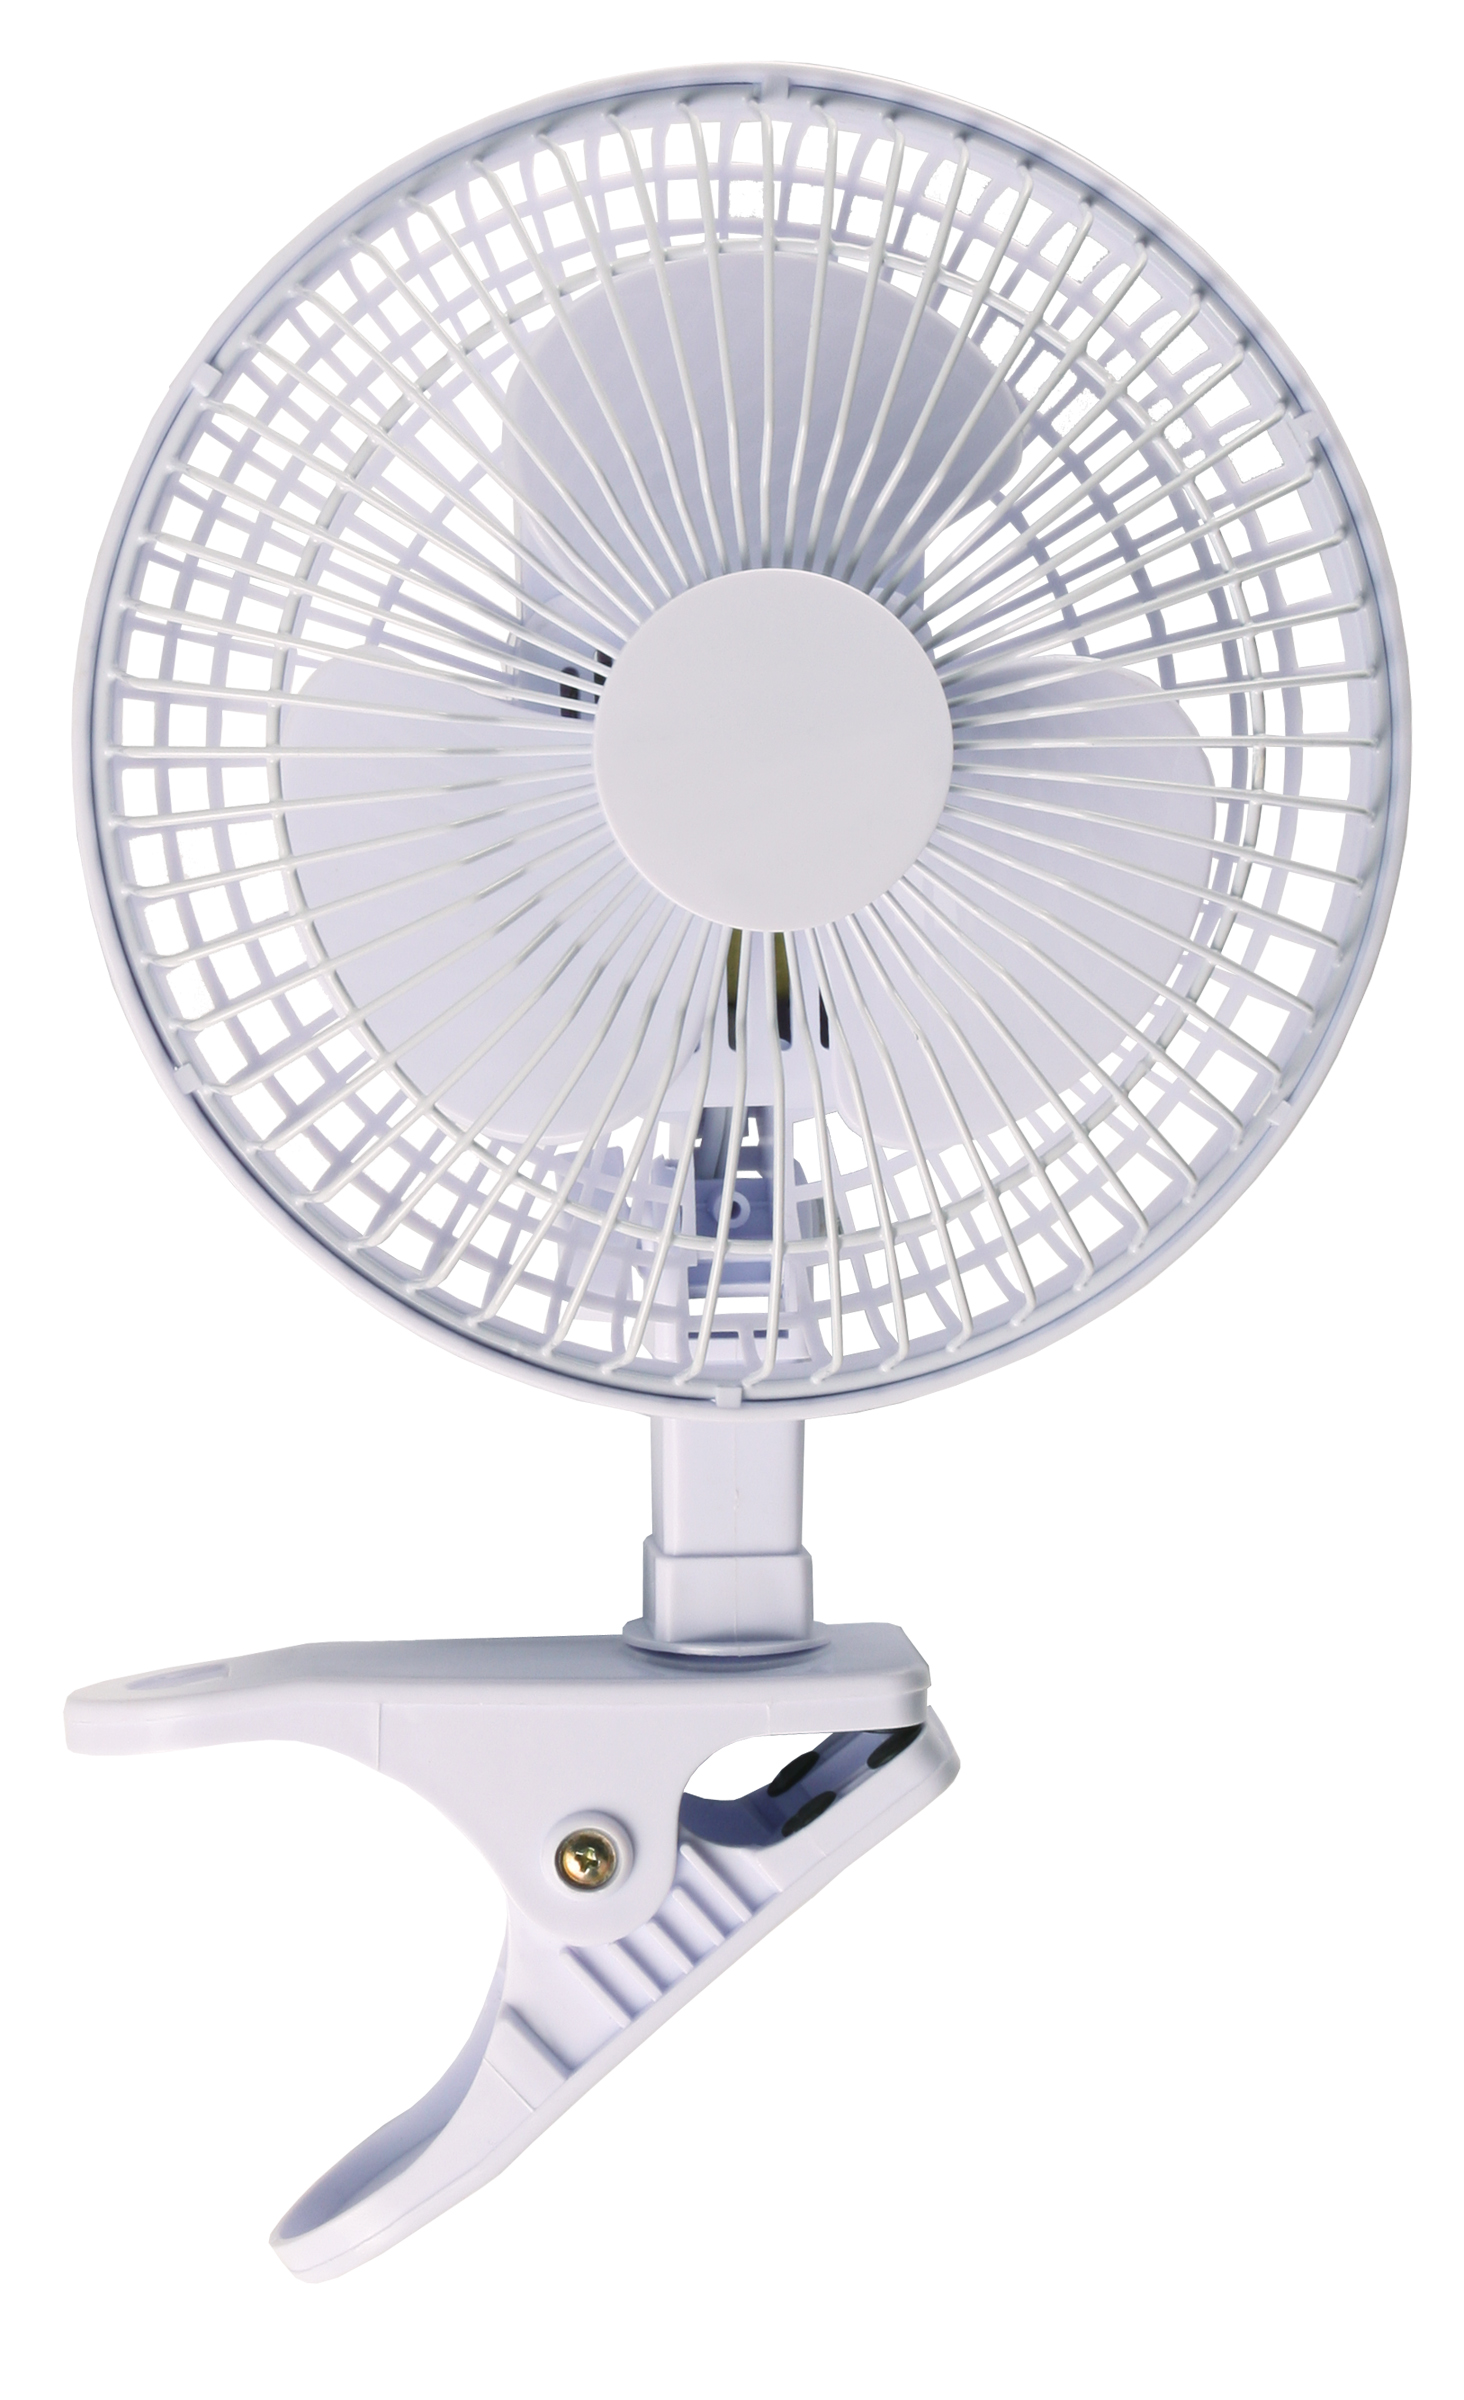 internal-circulation-fan.jpg